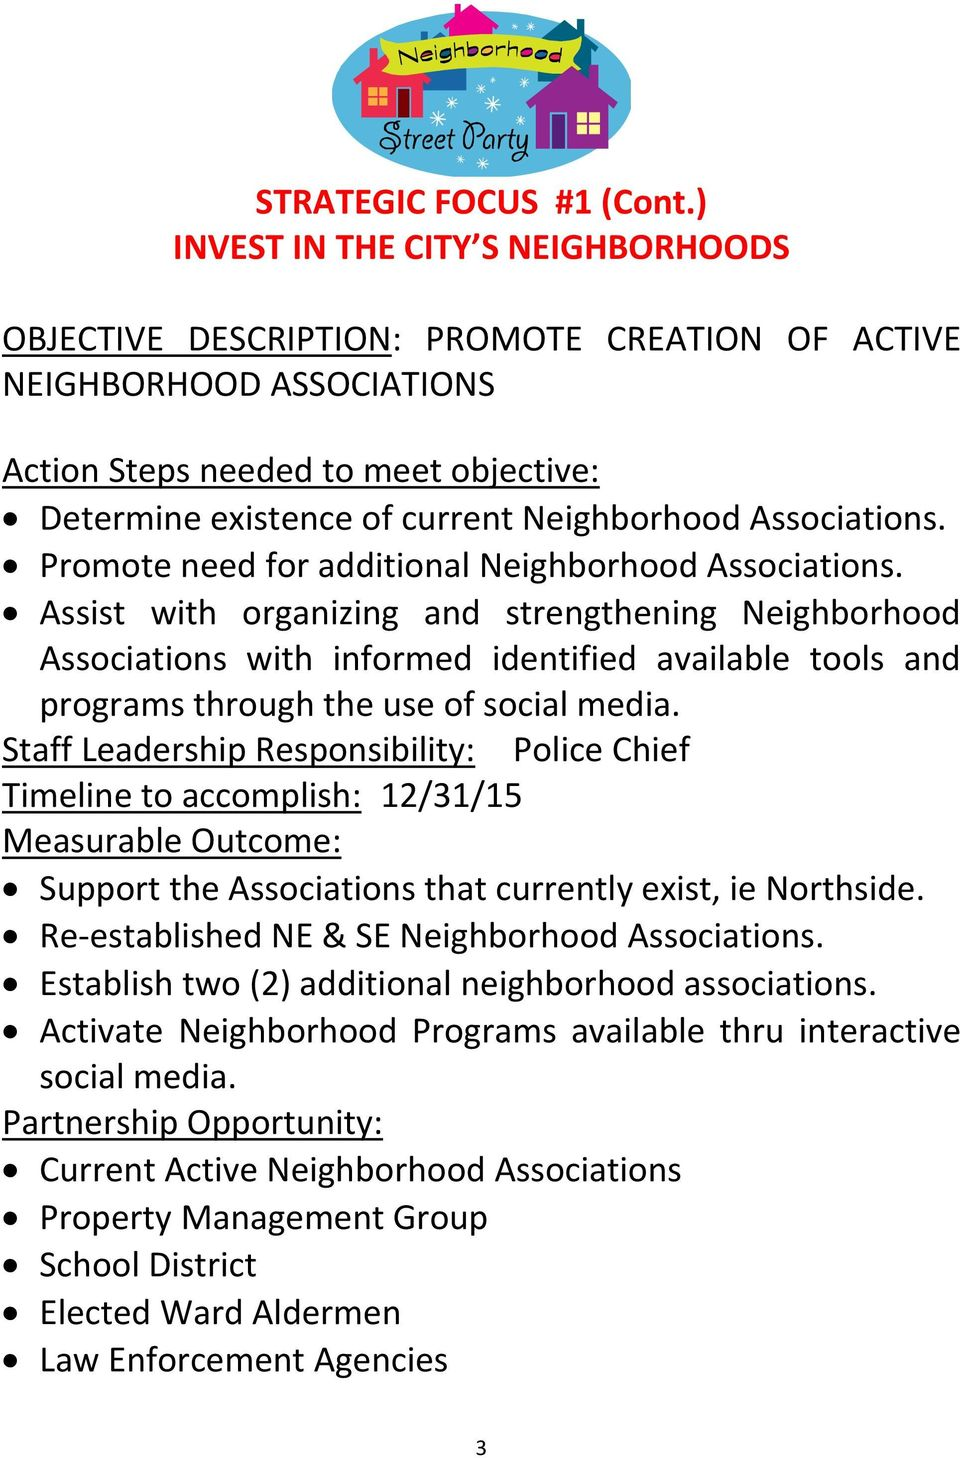 Assist with organizing and strengthening Neighborhood Associations with informed identified available tools and programs through the use of social media.